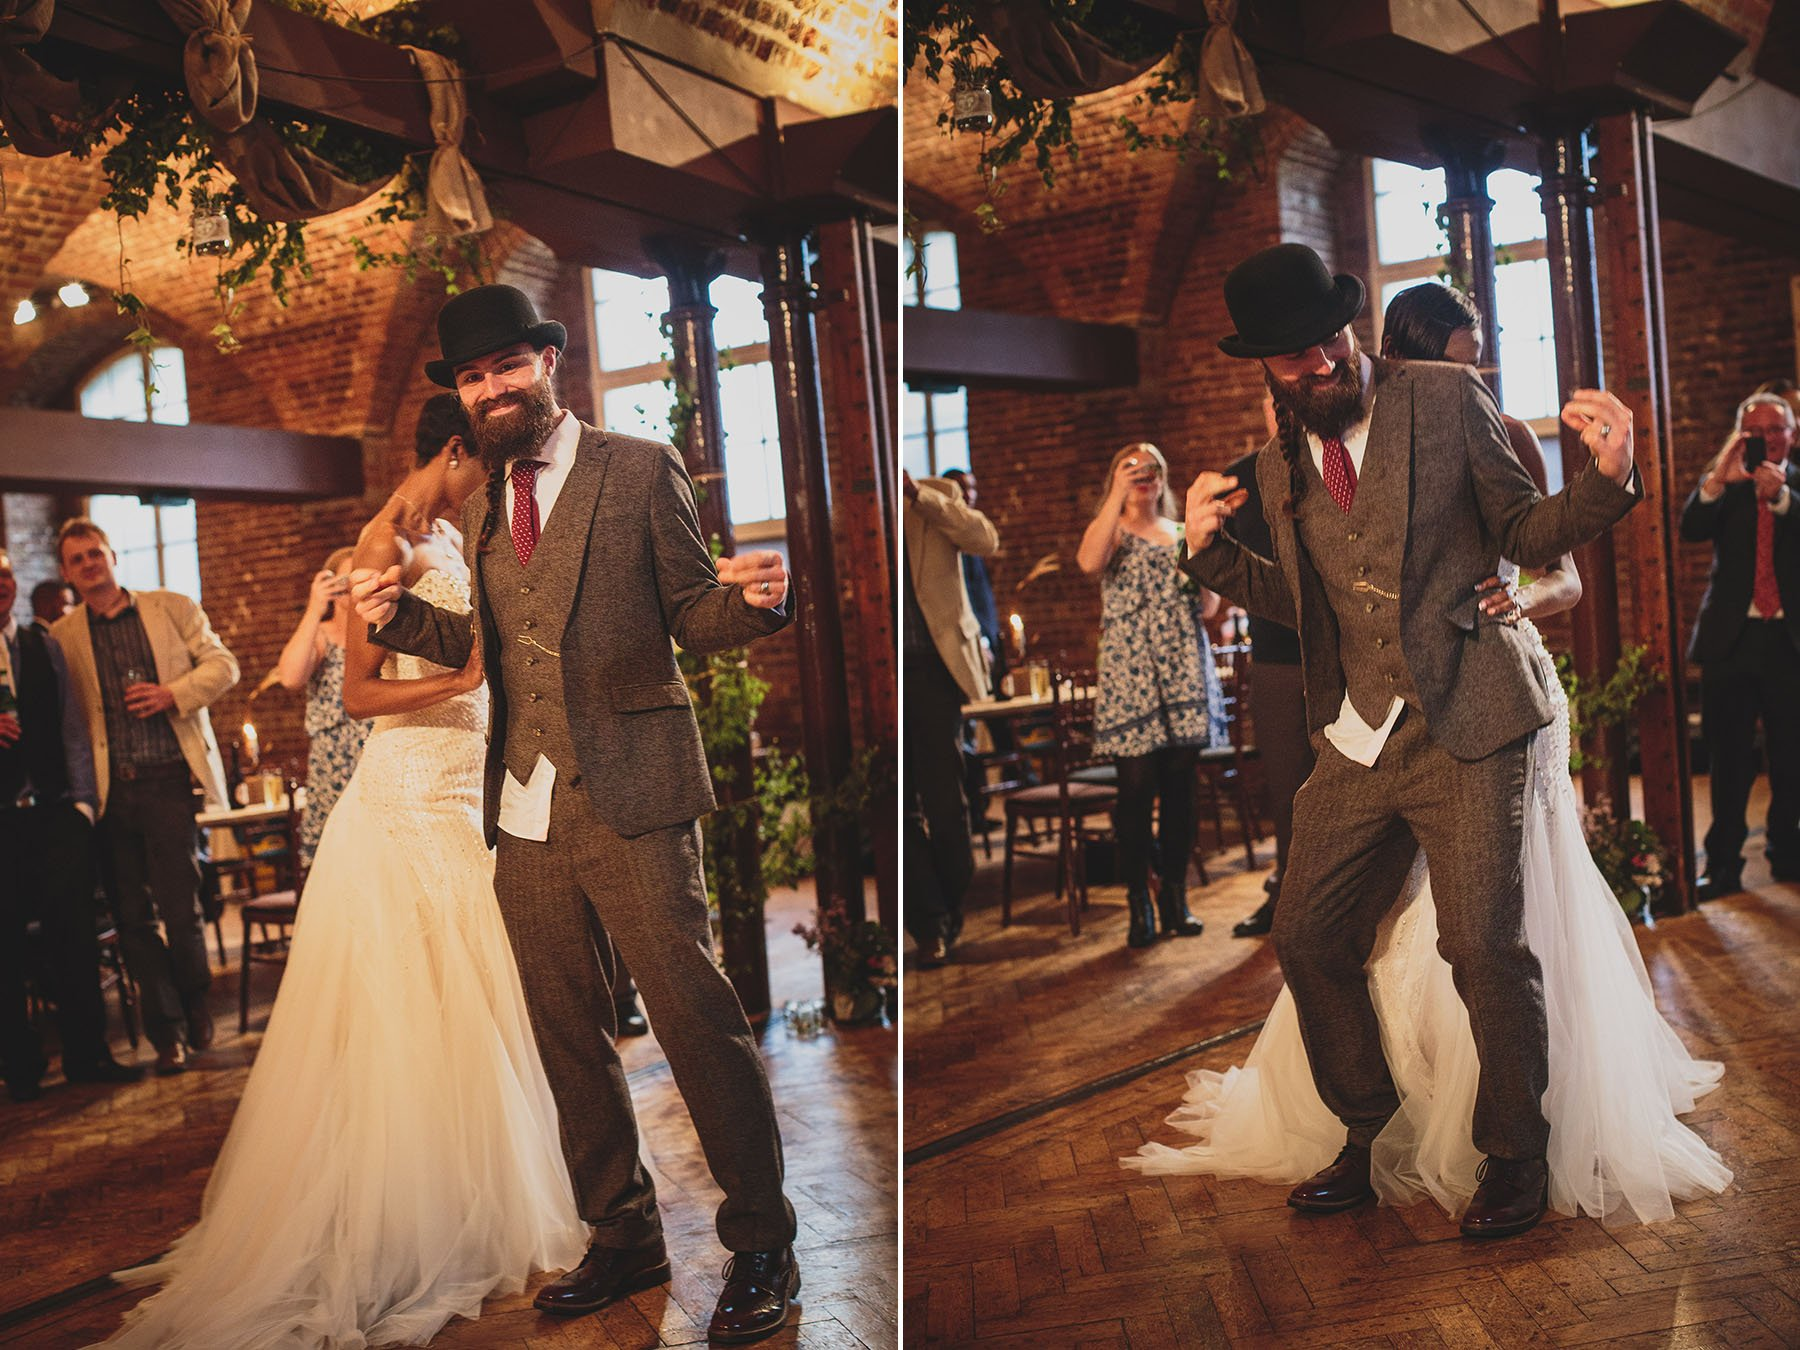 Asylum-Wedding-Photography-Jada-Chino-148